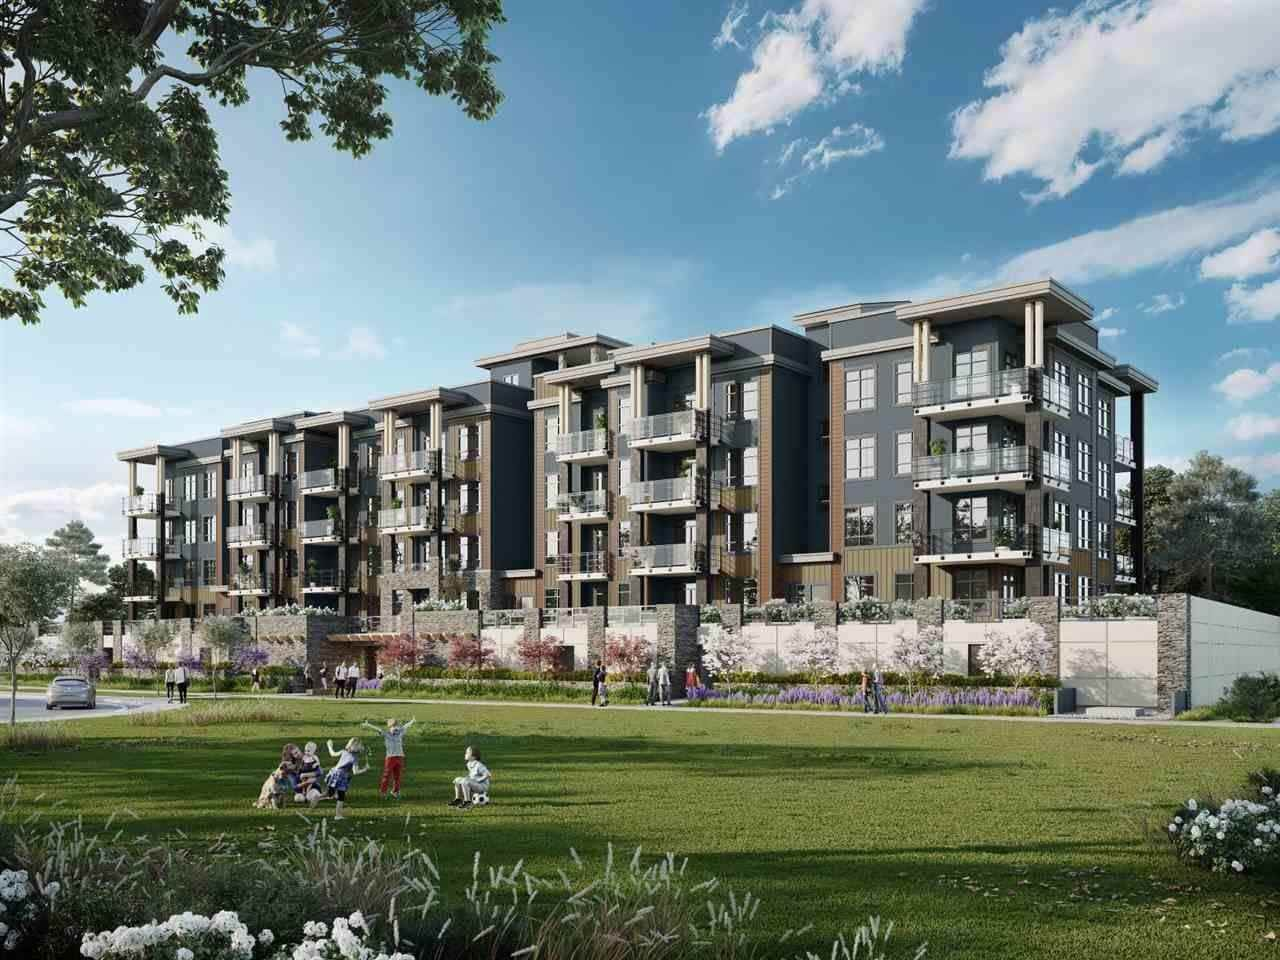 """Main Photo: 508 45562 AIRPORT Road in Chilliwack: Chilliwack E Young-Yale Condo for sale in """"THE ELLIOT"""" : MLS®# R2586890"""